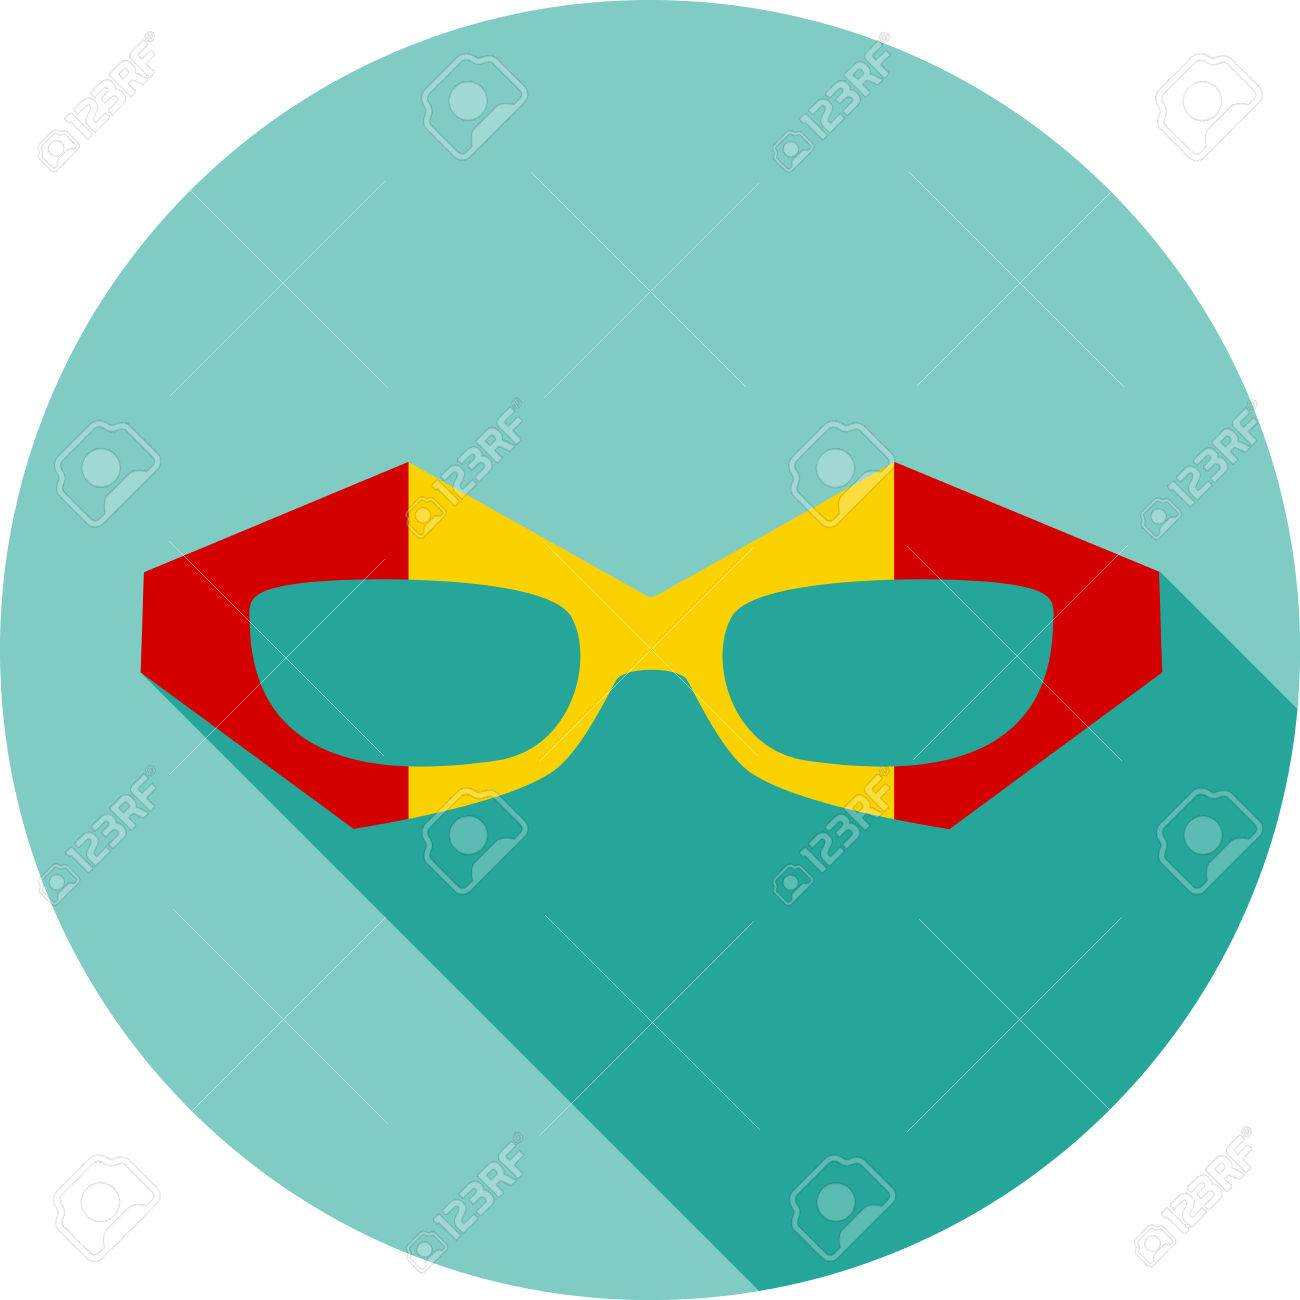 f7b5b4412d ... hipster eyeglasses frames in different character colors. Super hero  mask glasses collection. Flat style avatar icon. Colorful vector  illustration eps 8